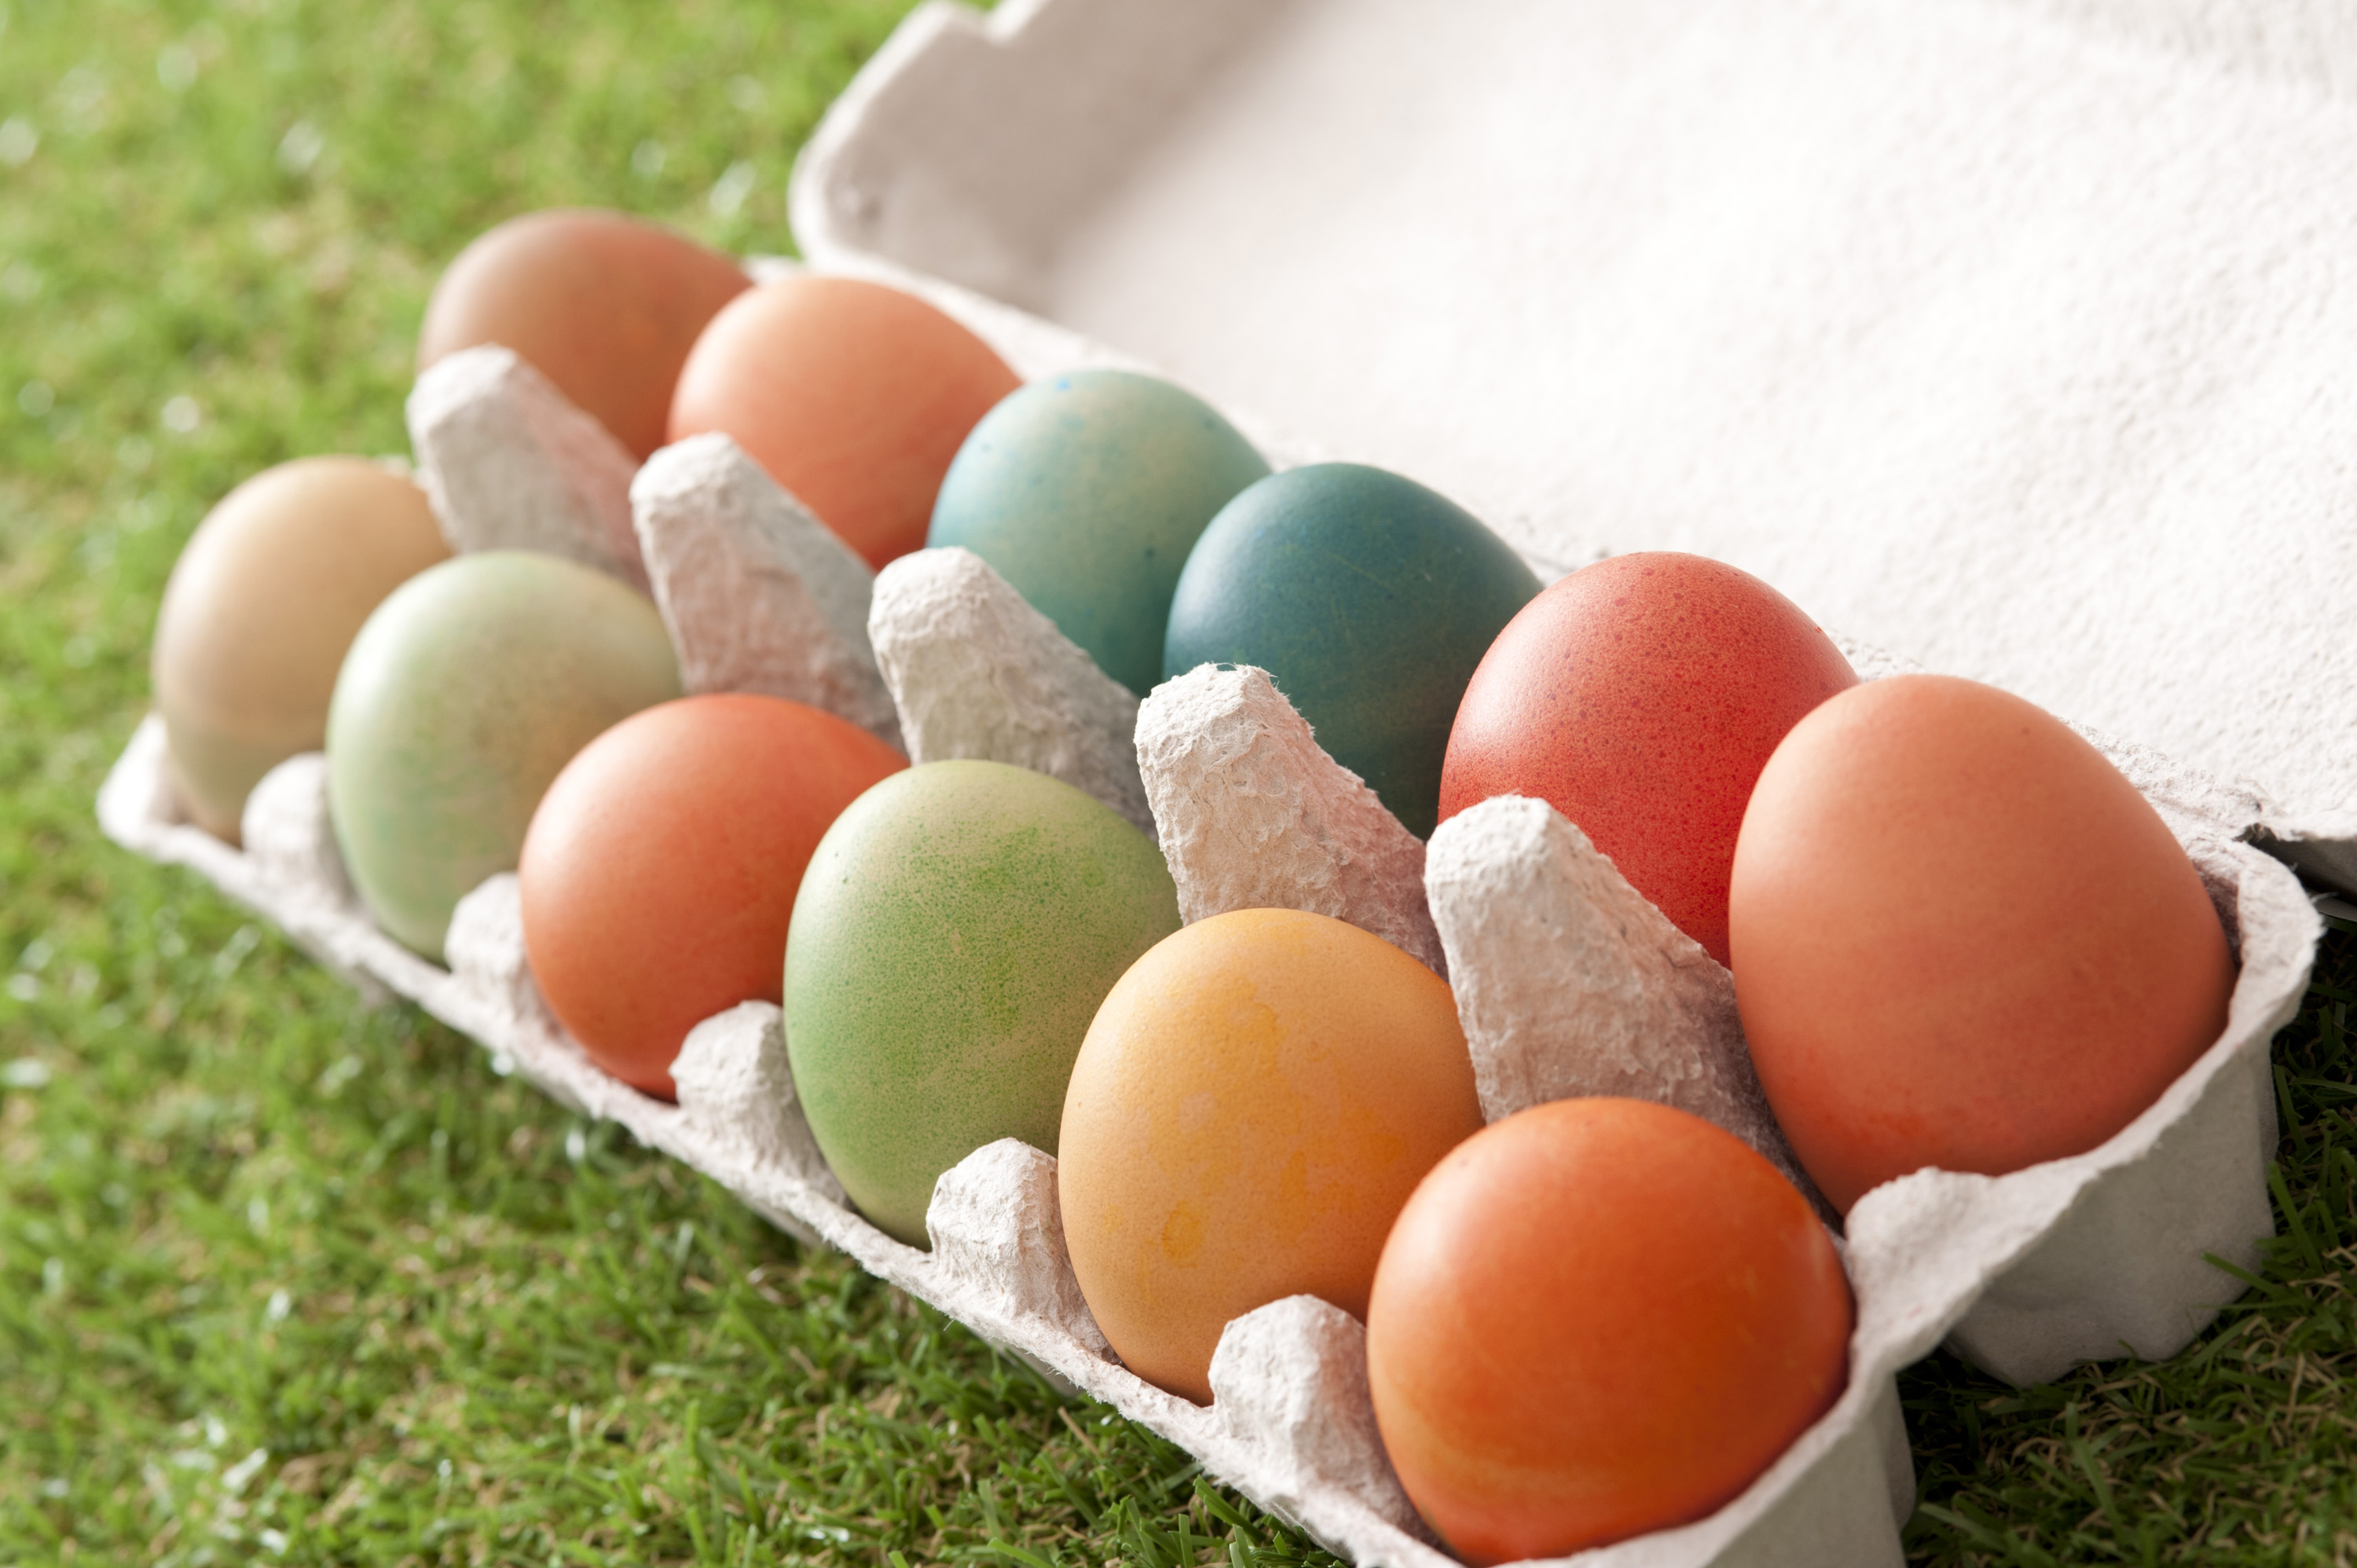 pace_eggs.jpg - Various colored Easter Eggs in open paper carton over green grass for holiday theme